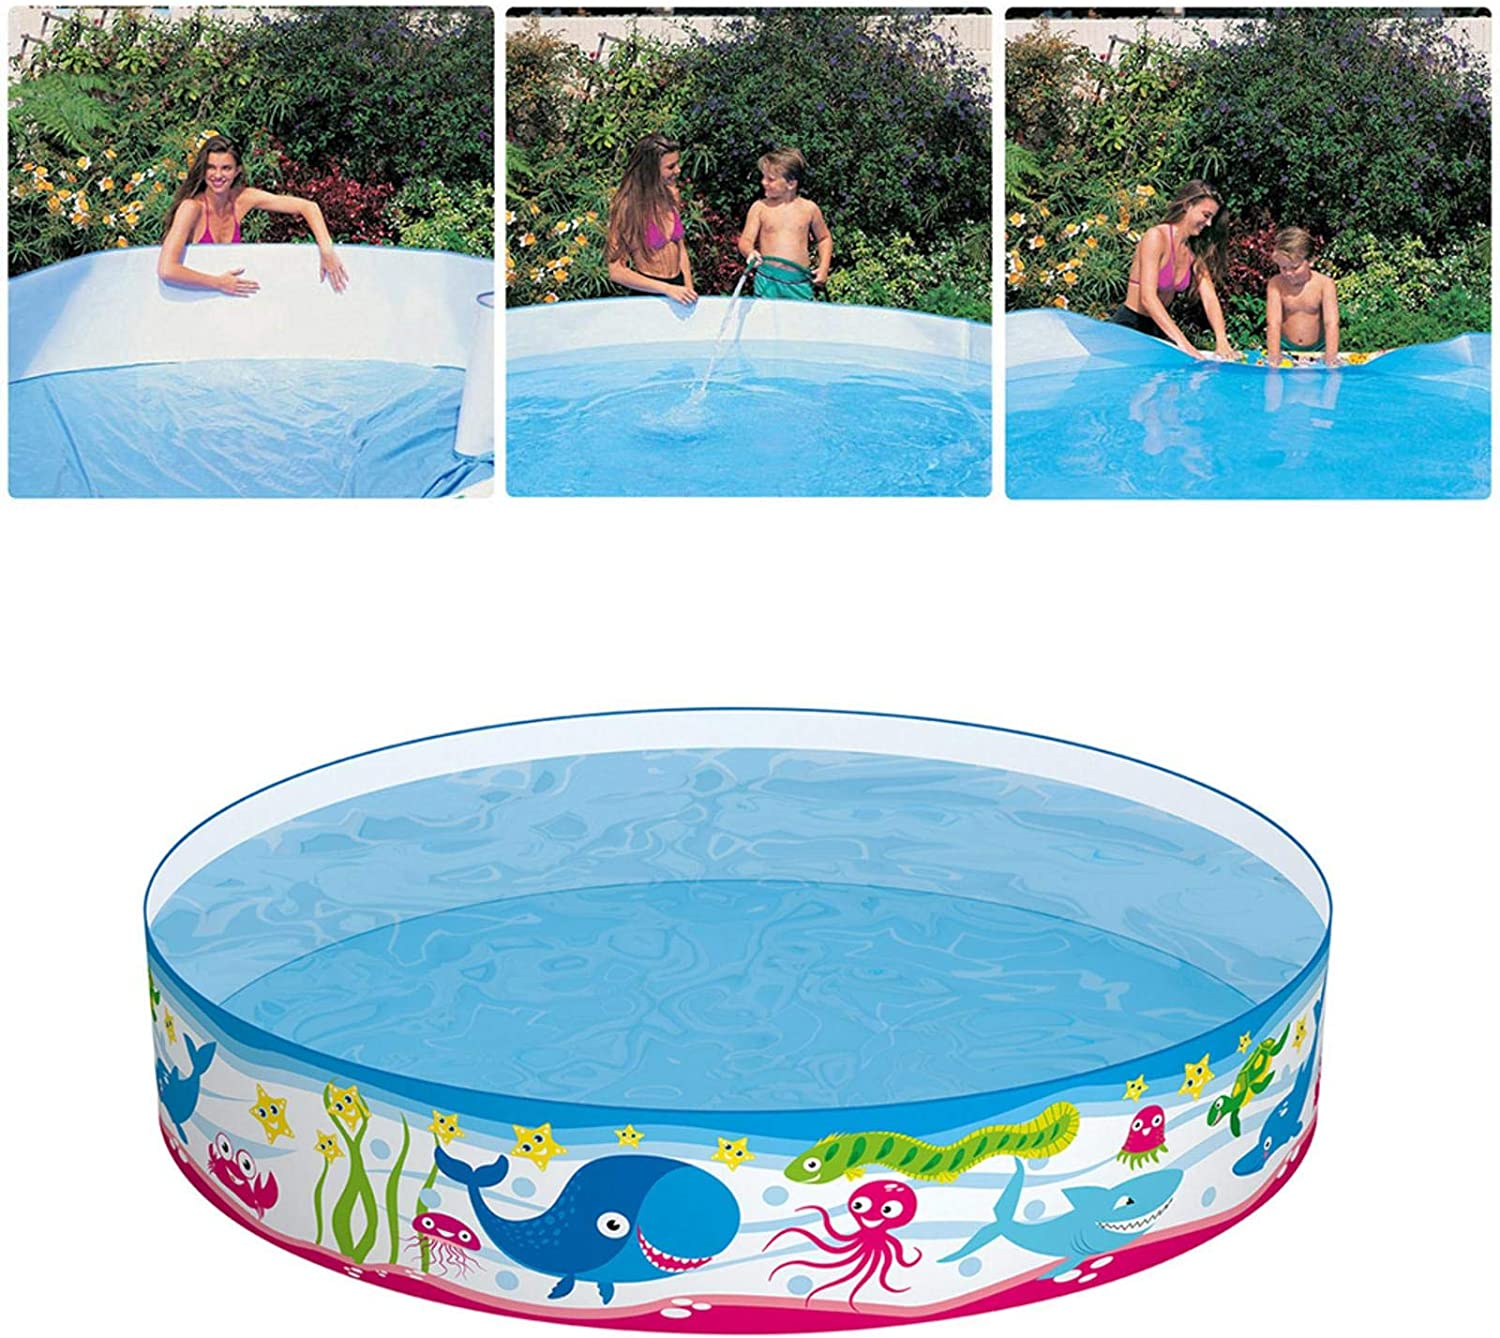 59 84 9 84in Non Inflatable Family Swimming Pool Snap Set Swimming Pool Kids Paddling Pool Children Playing Outdoor Water Fun Kitchen Dining